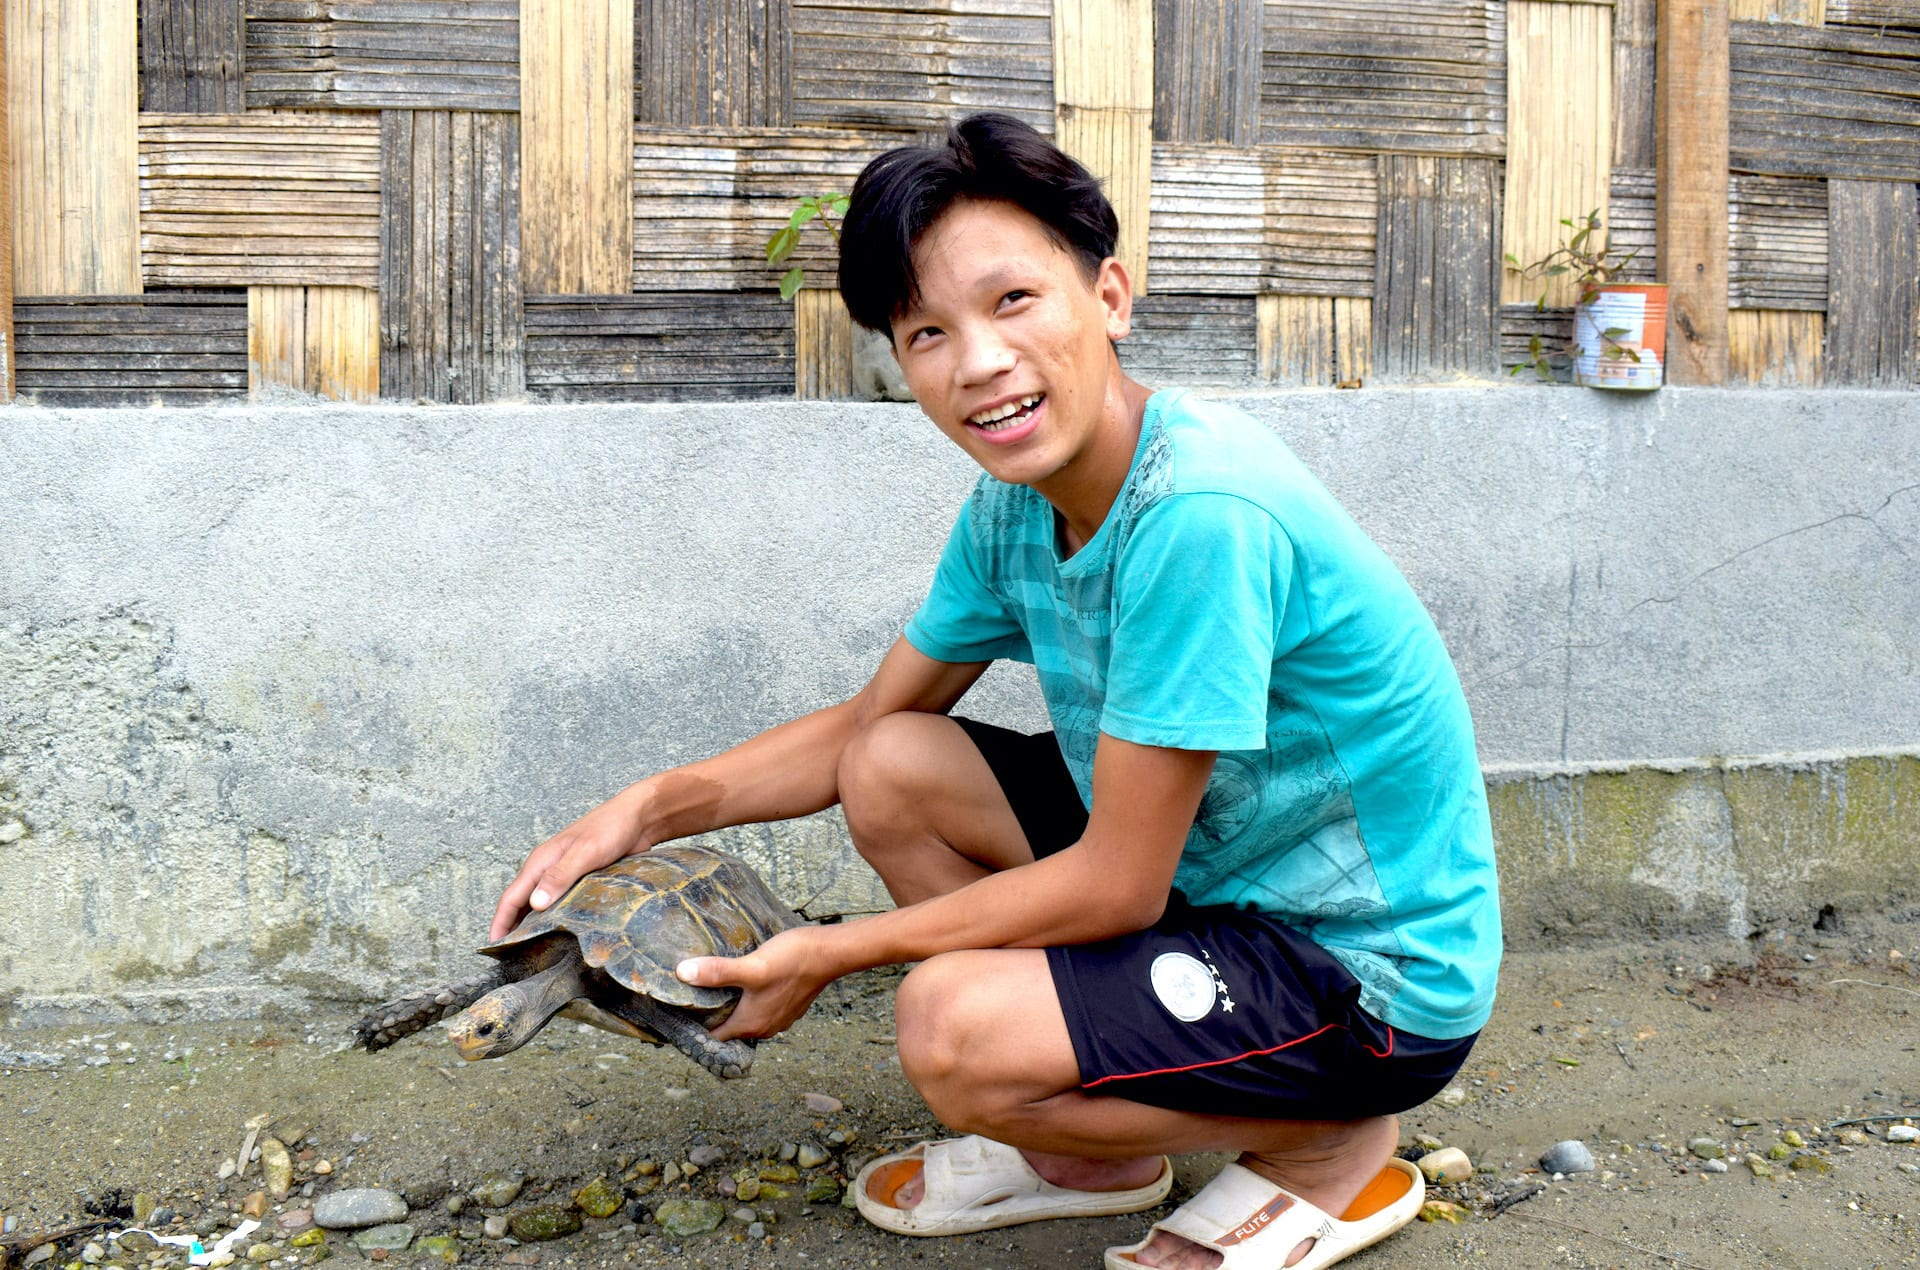 arunachal-pradesh-bamang-tachung-with-impressed-tortoise-he-found-and-released-back-into-the-wild